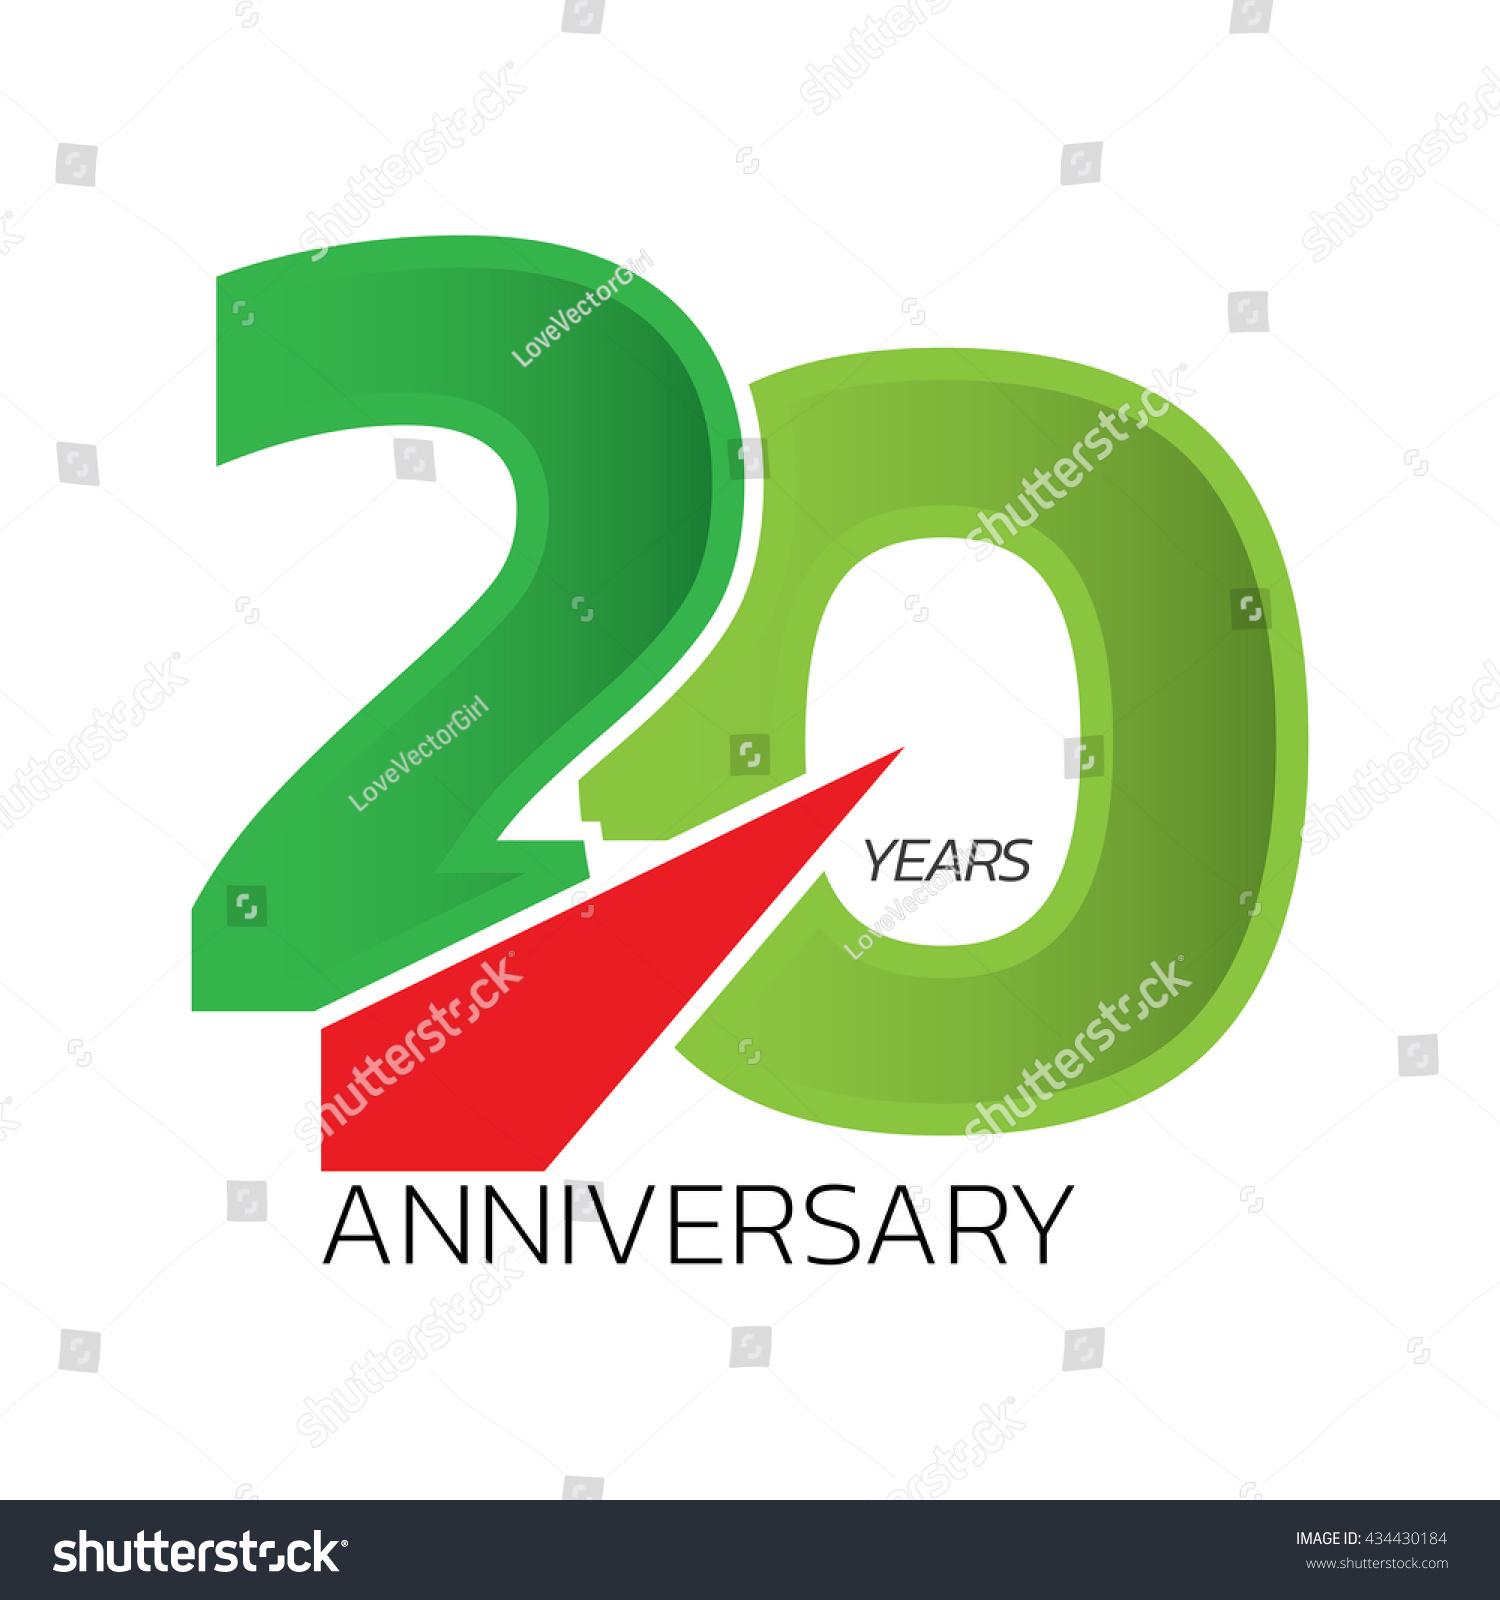 Celebrating Anniversary Symbol Green Color Tone Stock Vector